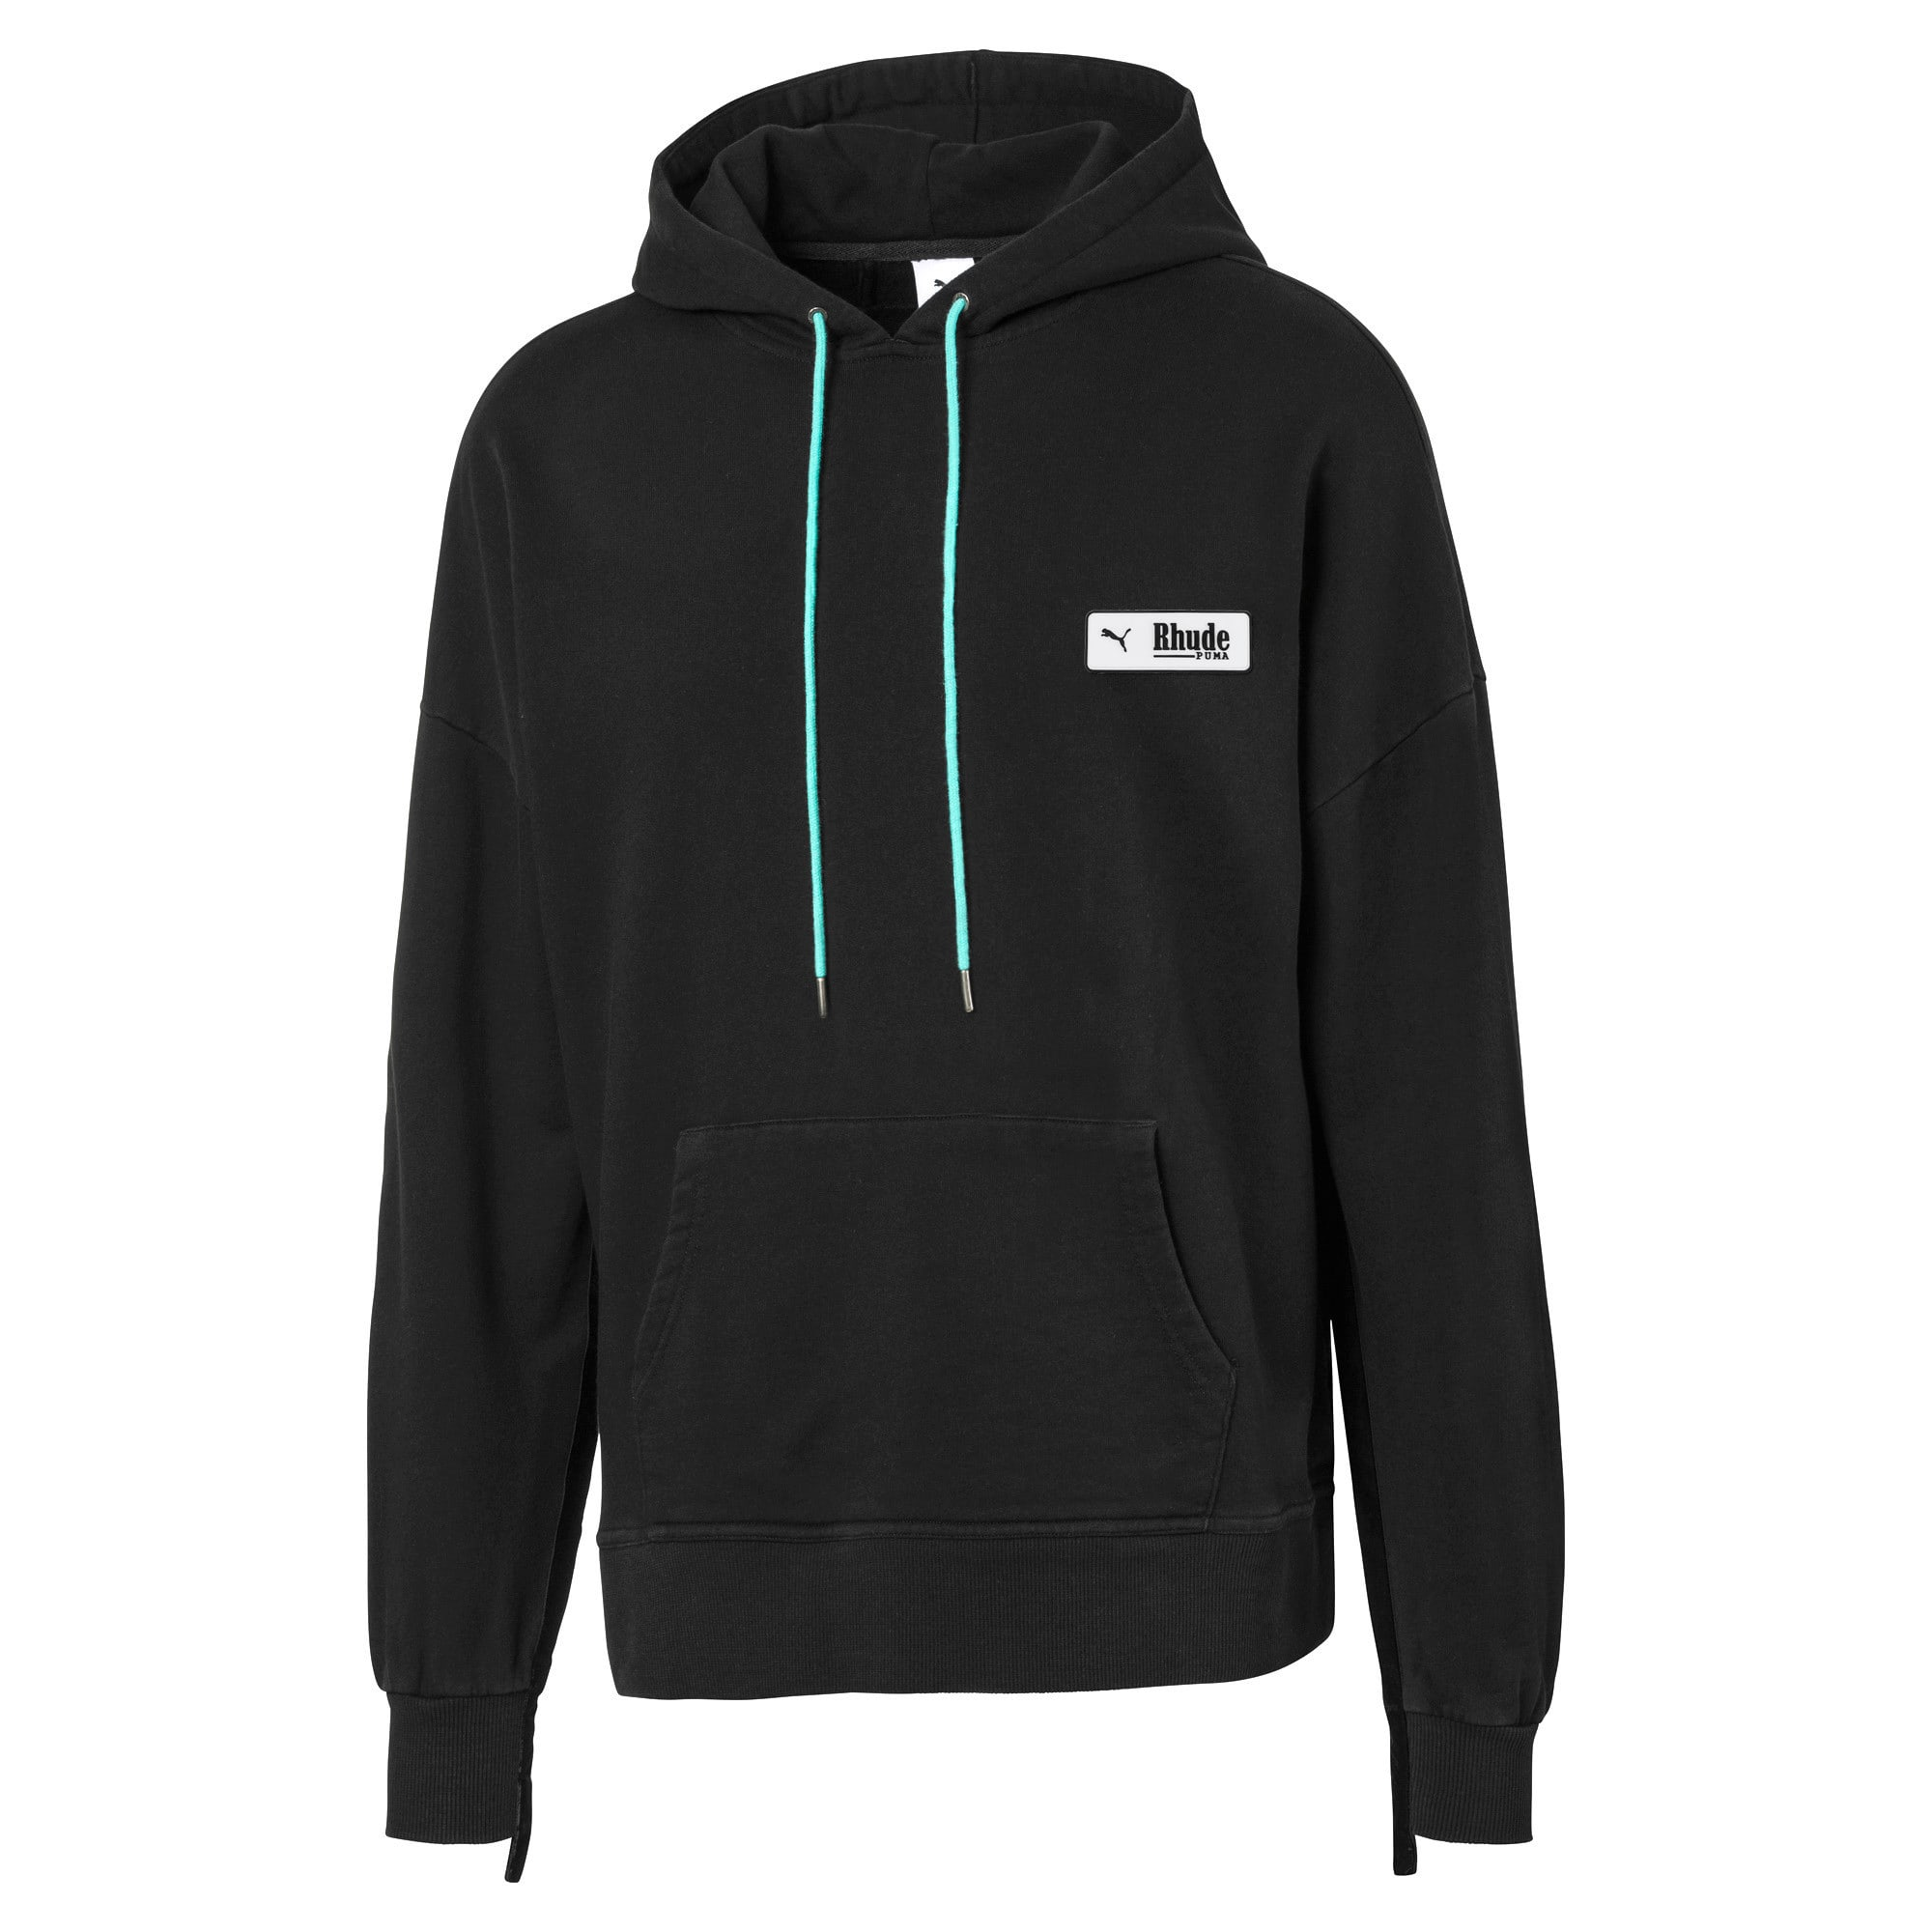 Thumbnail 1 of PUMA x RHUDE hoodie voor heren, Puma Black, medium